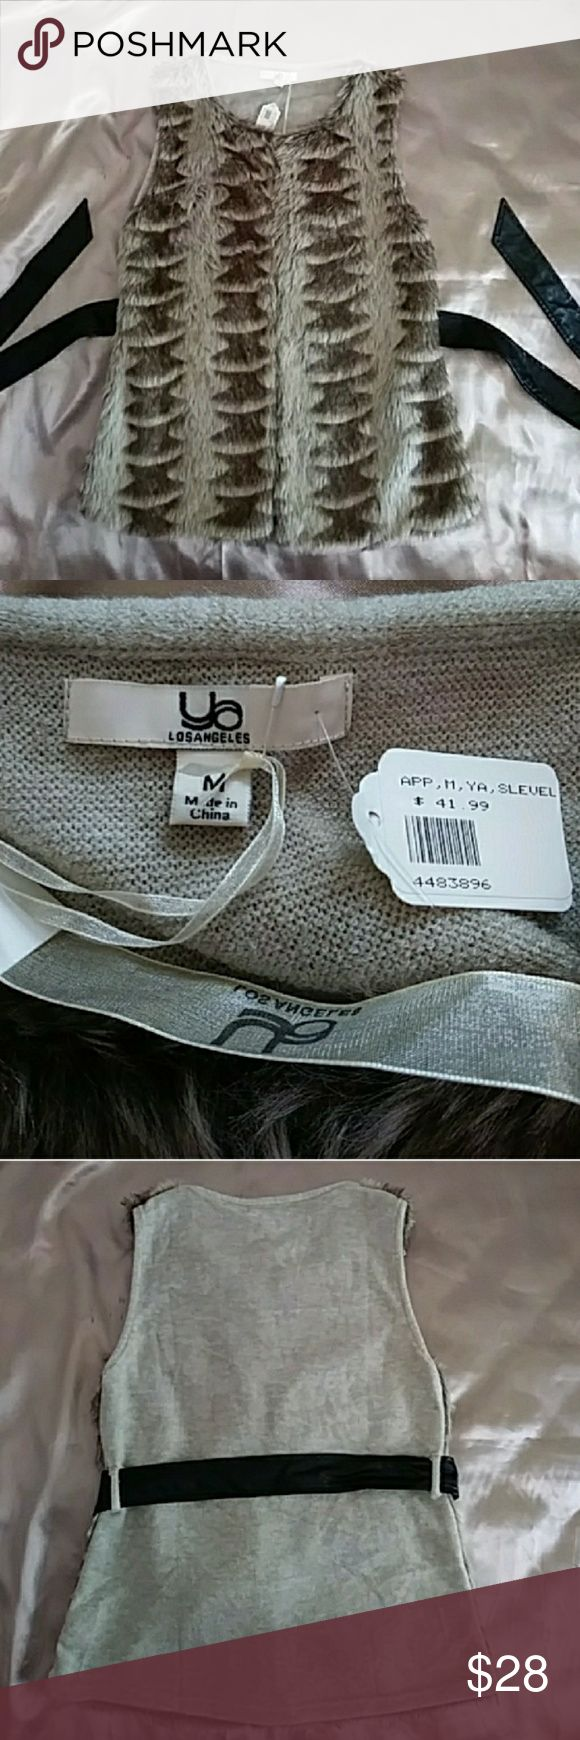 Ya Los Angeles faux fur vest Comes with faux leather belt Brand new     LIKE THIS ITEM BUT NOT THE PRICE?  🎉MAKE AN OFFER I ALMOST ALWAYS ACCEPT!!! Ya Los Angeles Jackets & Coats